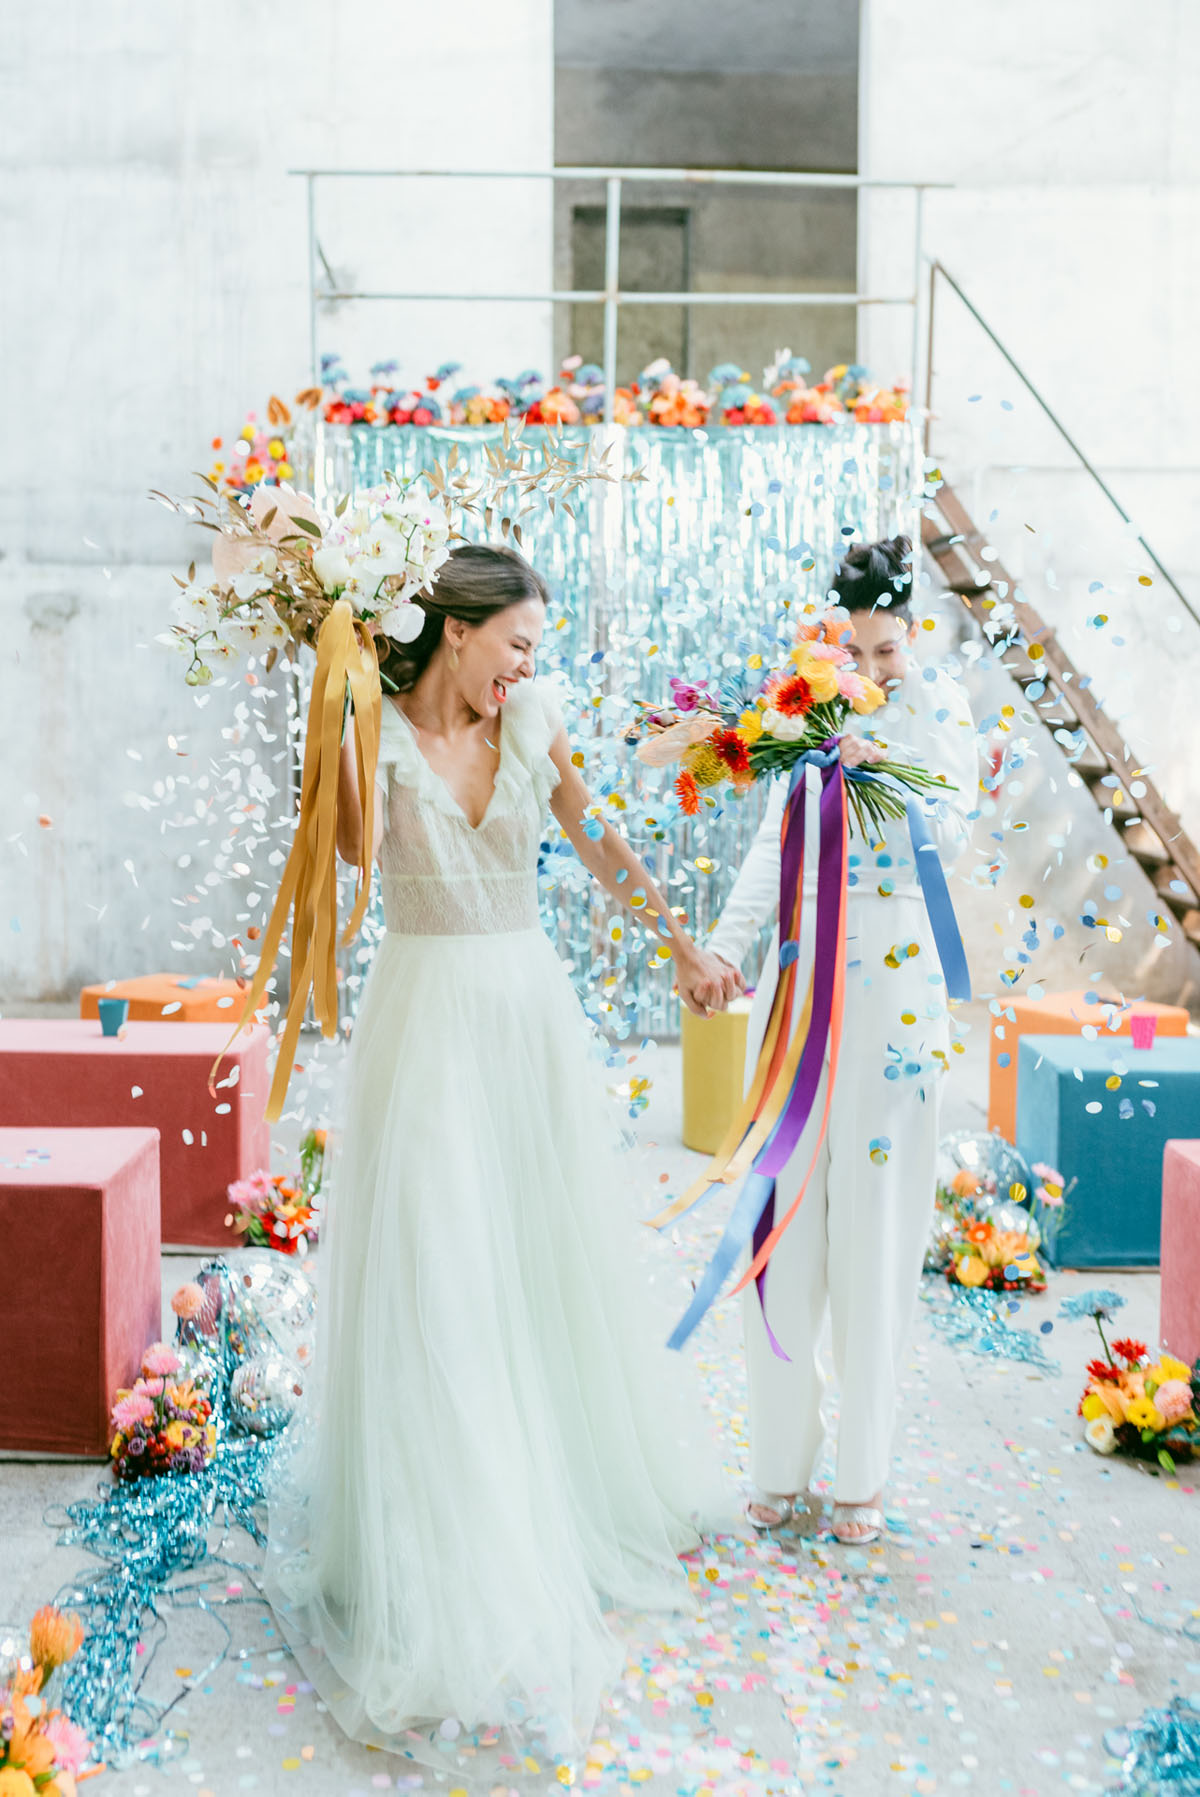 This fun and bright wedding shoot was about pop art and 80s vibes, with colorful touches